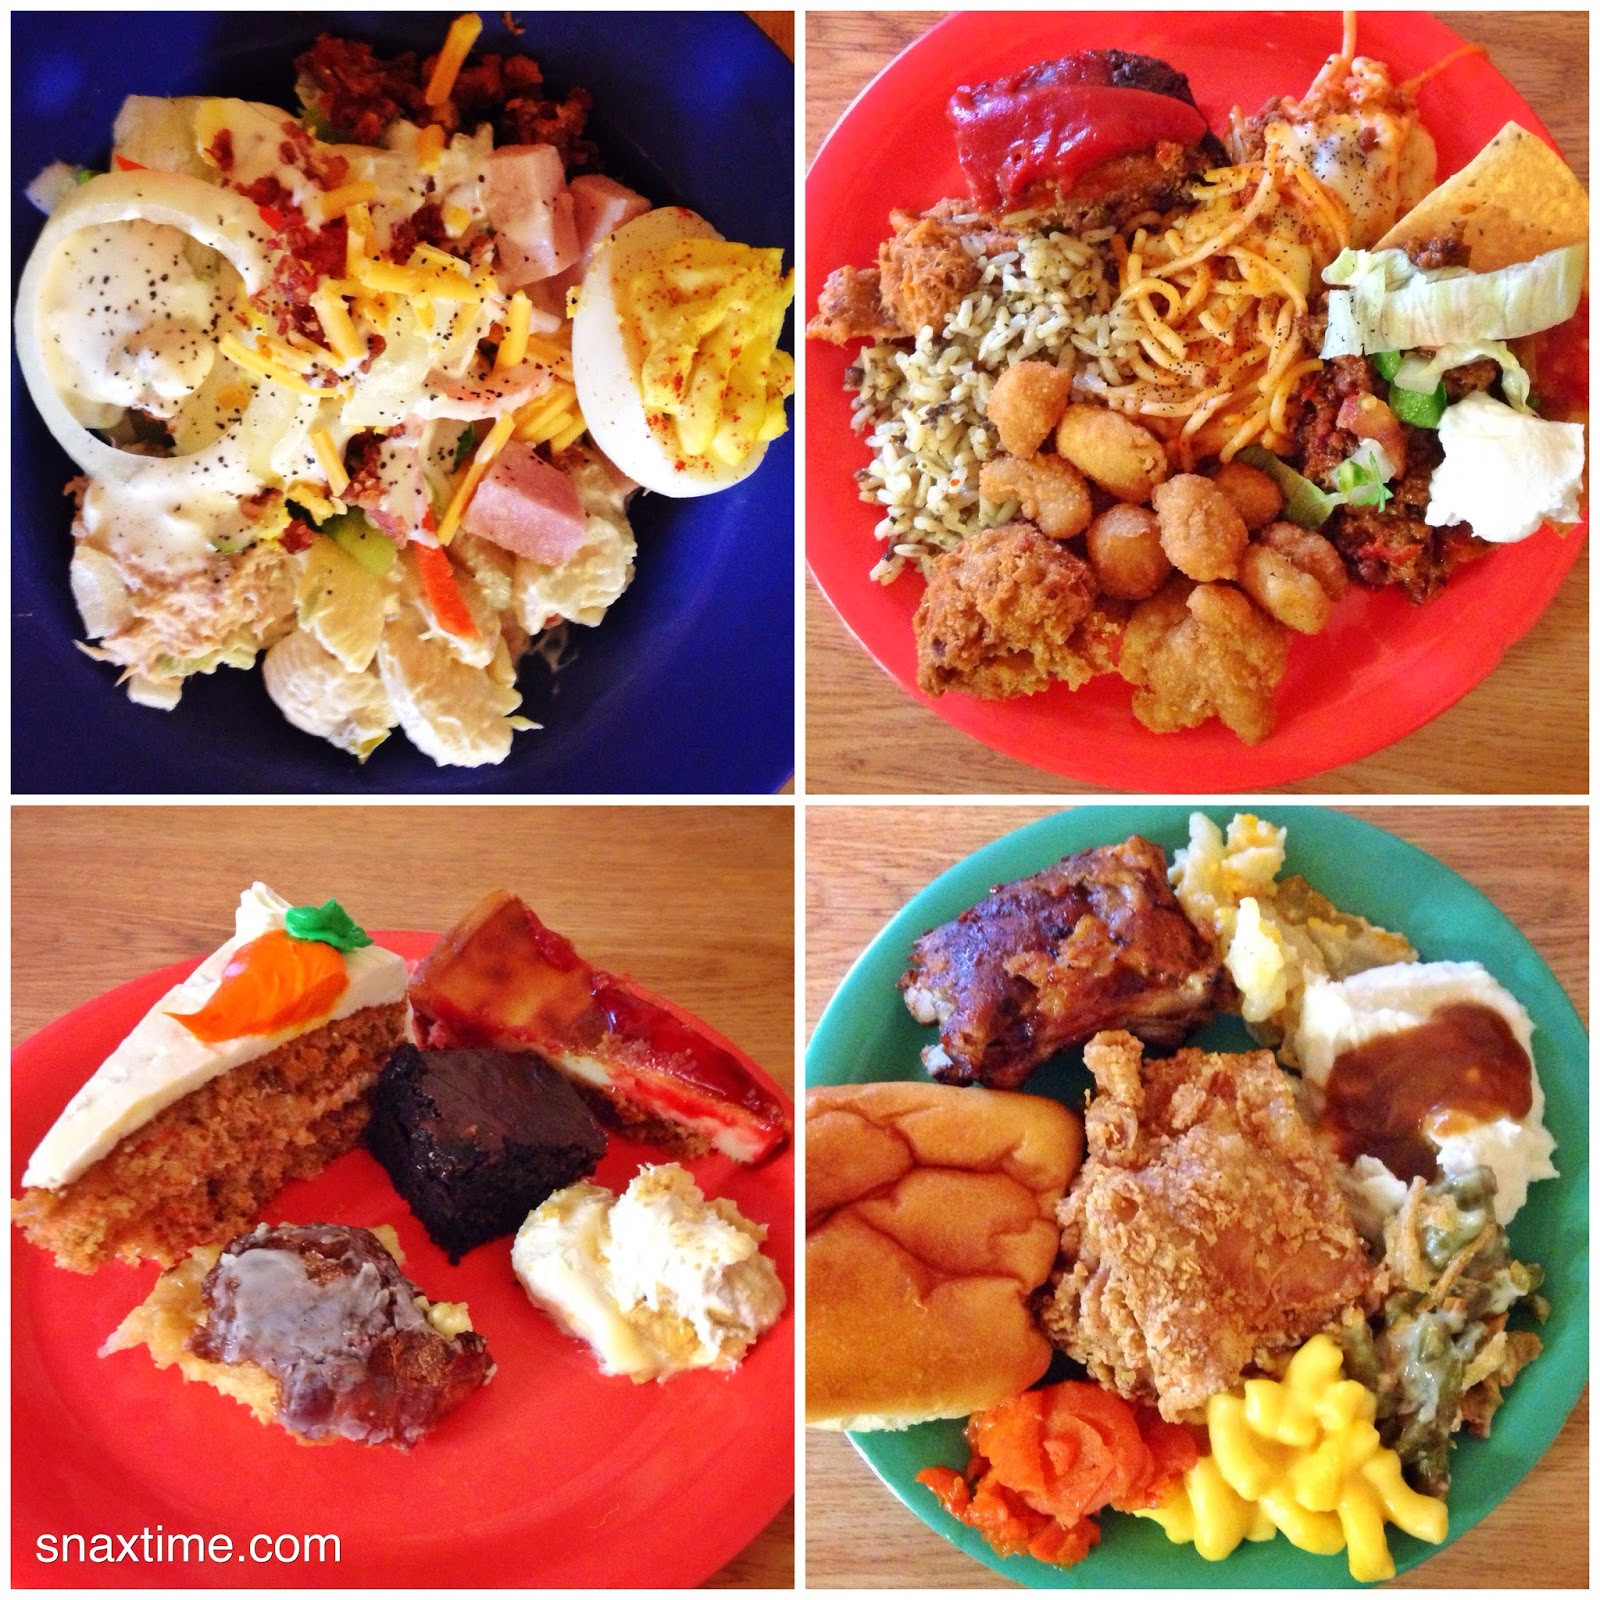 Golden Corral Dinner Menu  SNAXTIME Restaurant Review GOLDEN CORRAL 11 South